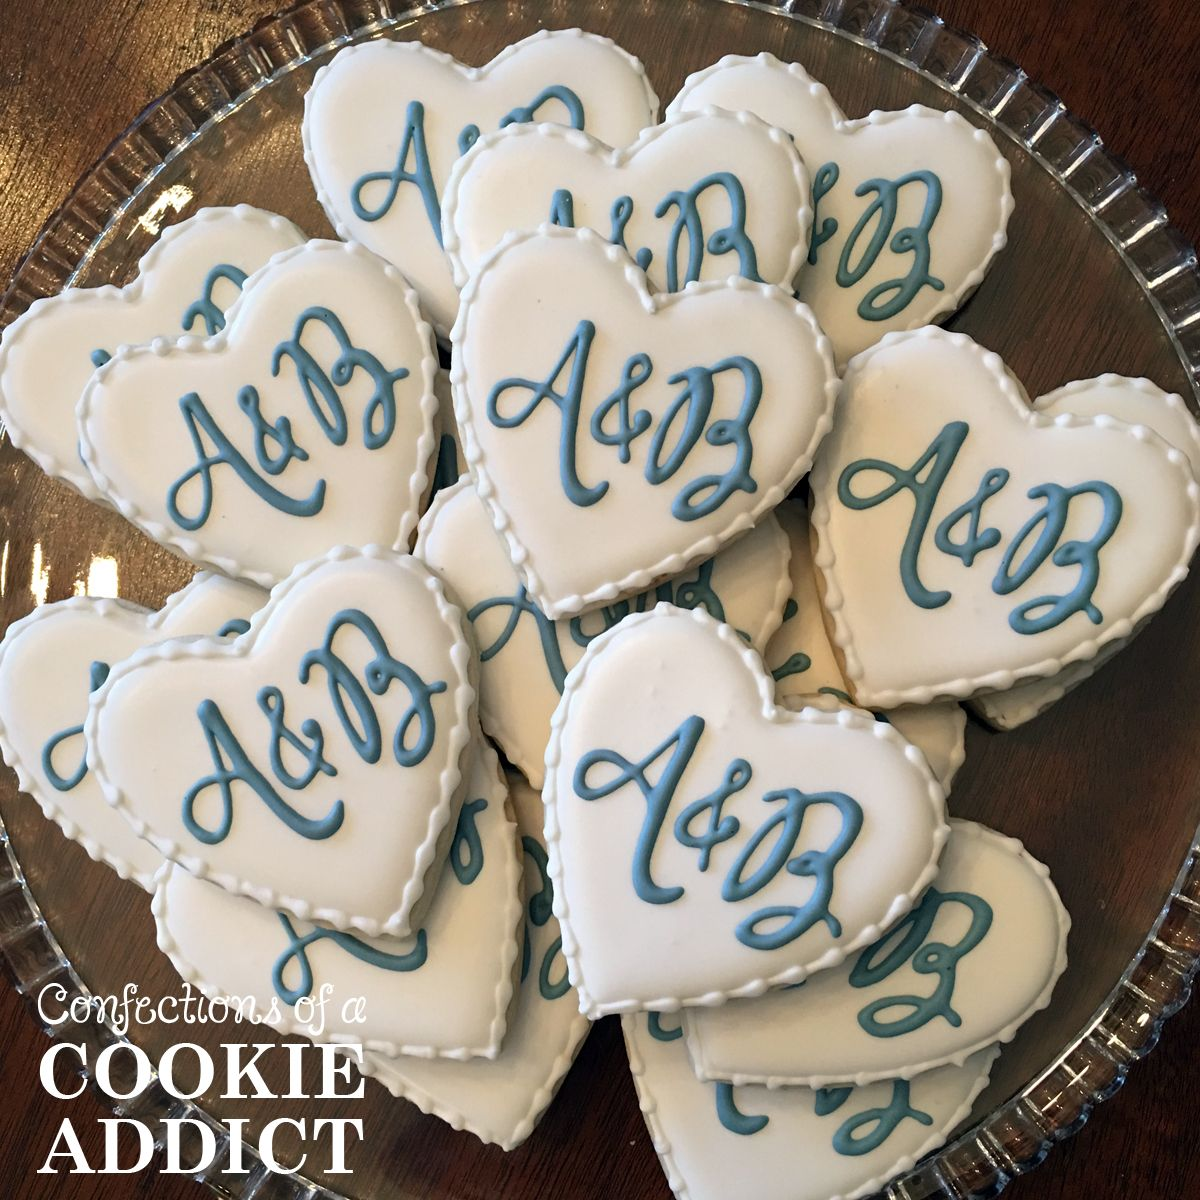 Pin by A Cookie Addict on Wedding & Engagement Cookies in ...